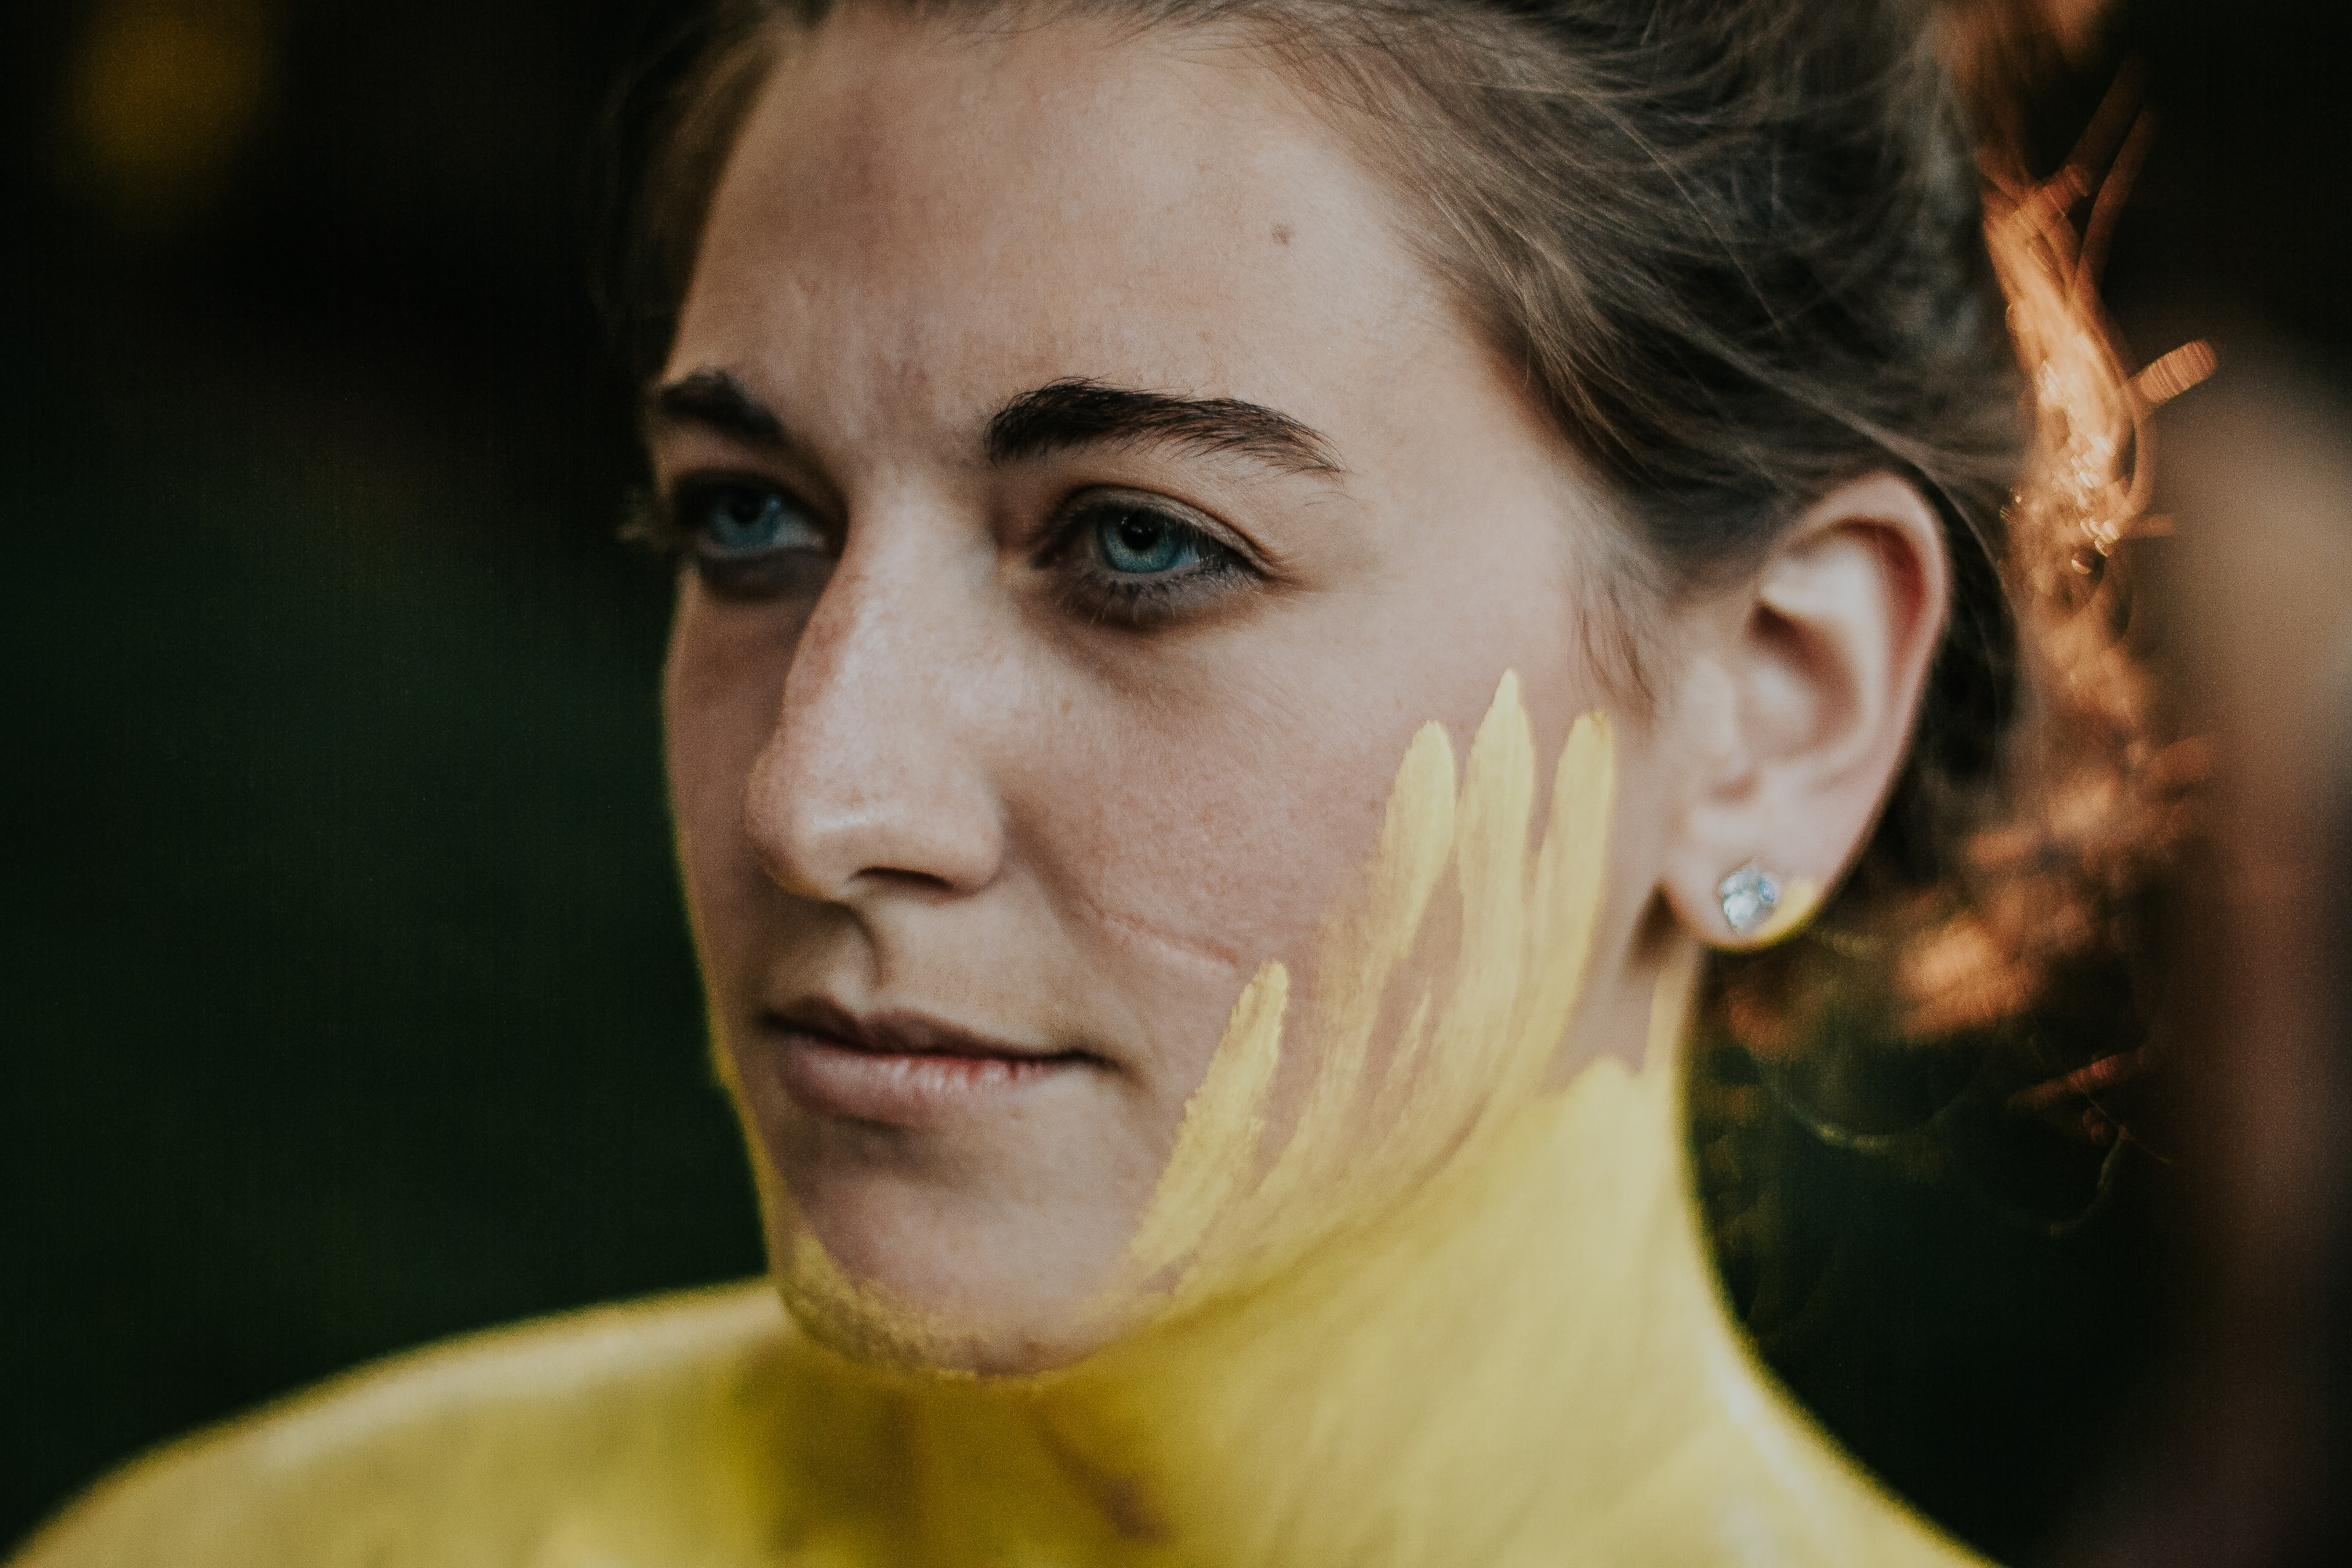 woman looking sideways with yellow paint on face